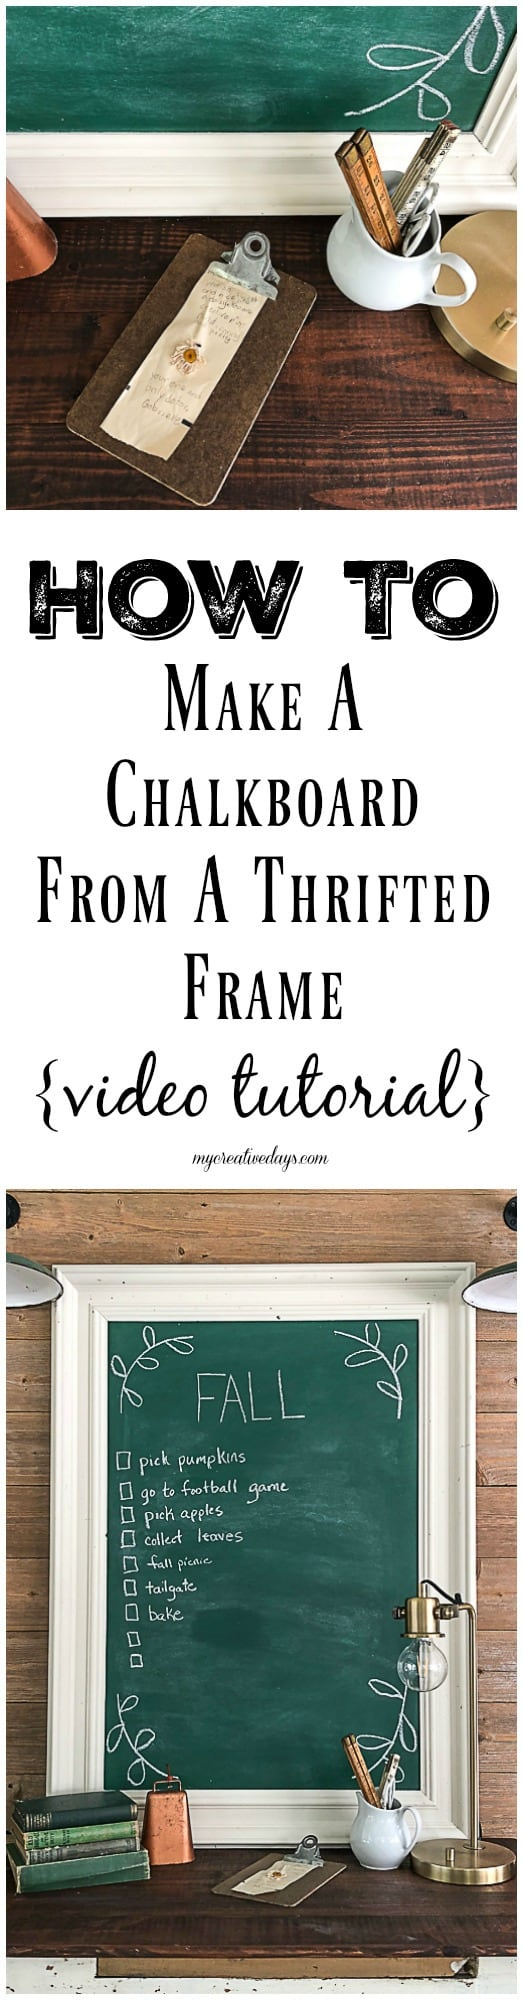 Green Chalkboard: How To Make One From A Thrifted Frame